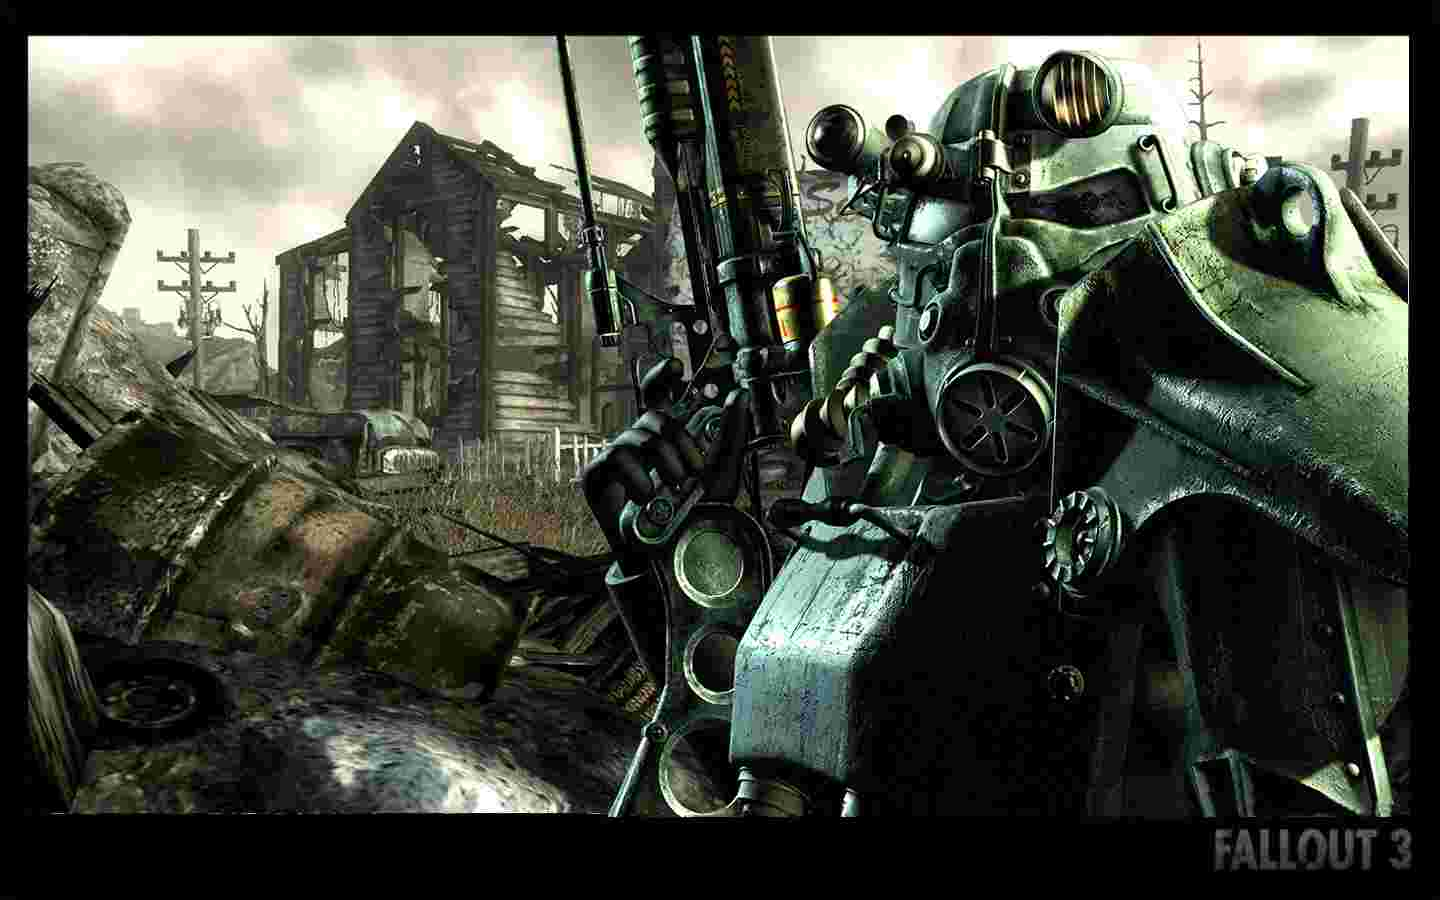 Fallout 3 wallpaper wallpapersafari fallout 3 wallpaper hd fallout 3 wallpaper fallout 3 bilder fallout 3 1440x900 thecheapjerseys Images